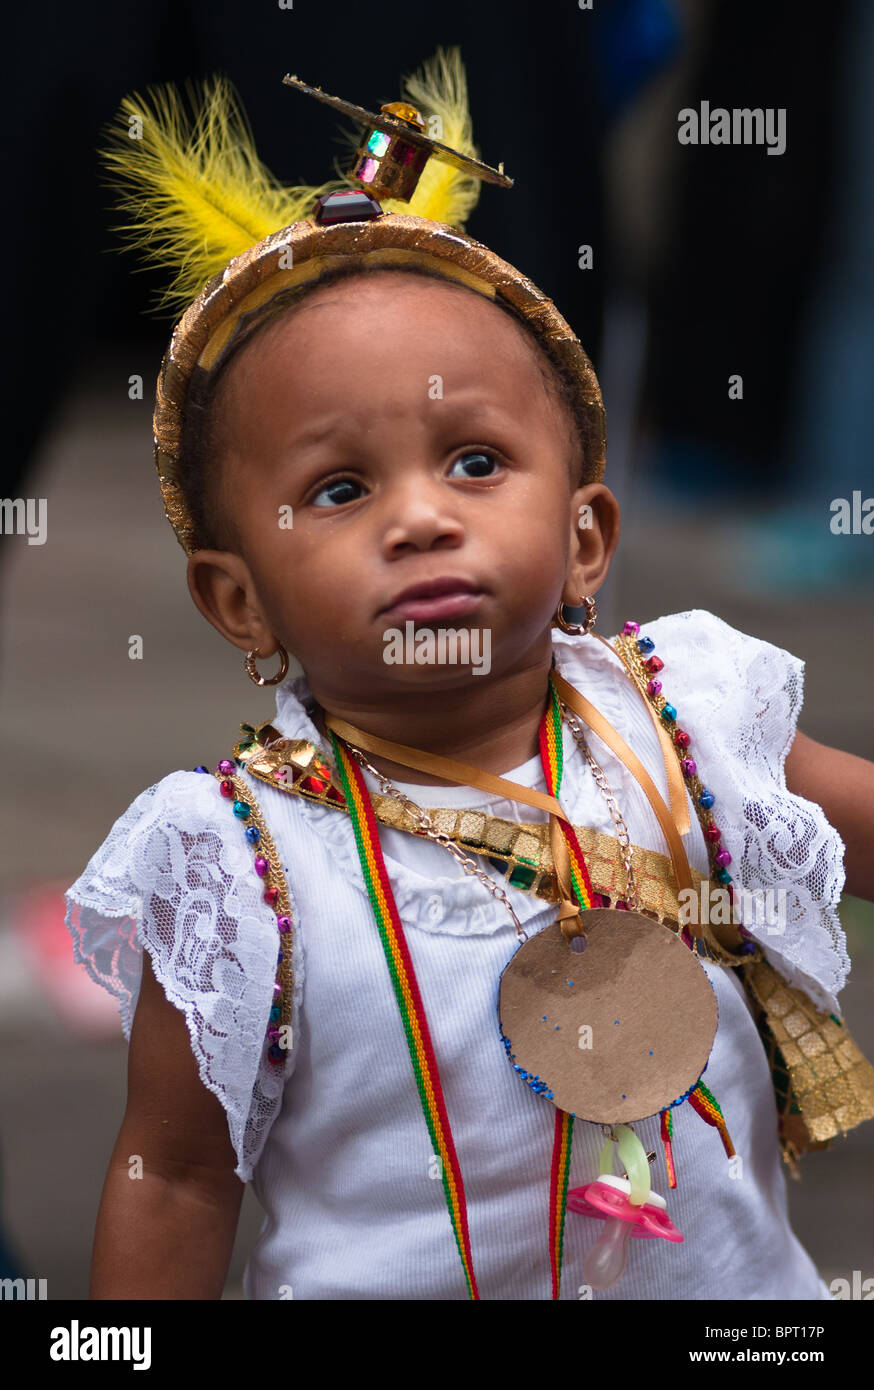 Notting hill Carnival baby. London. England - Stock Image